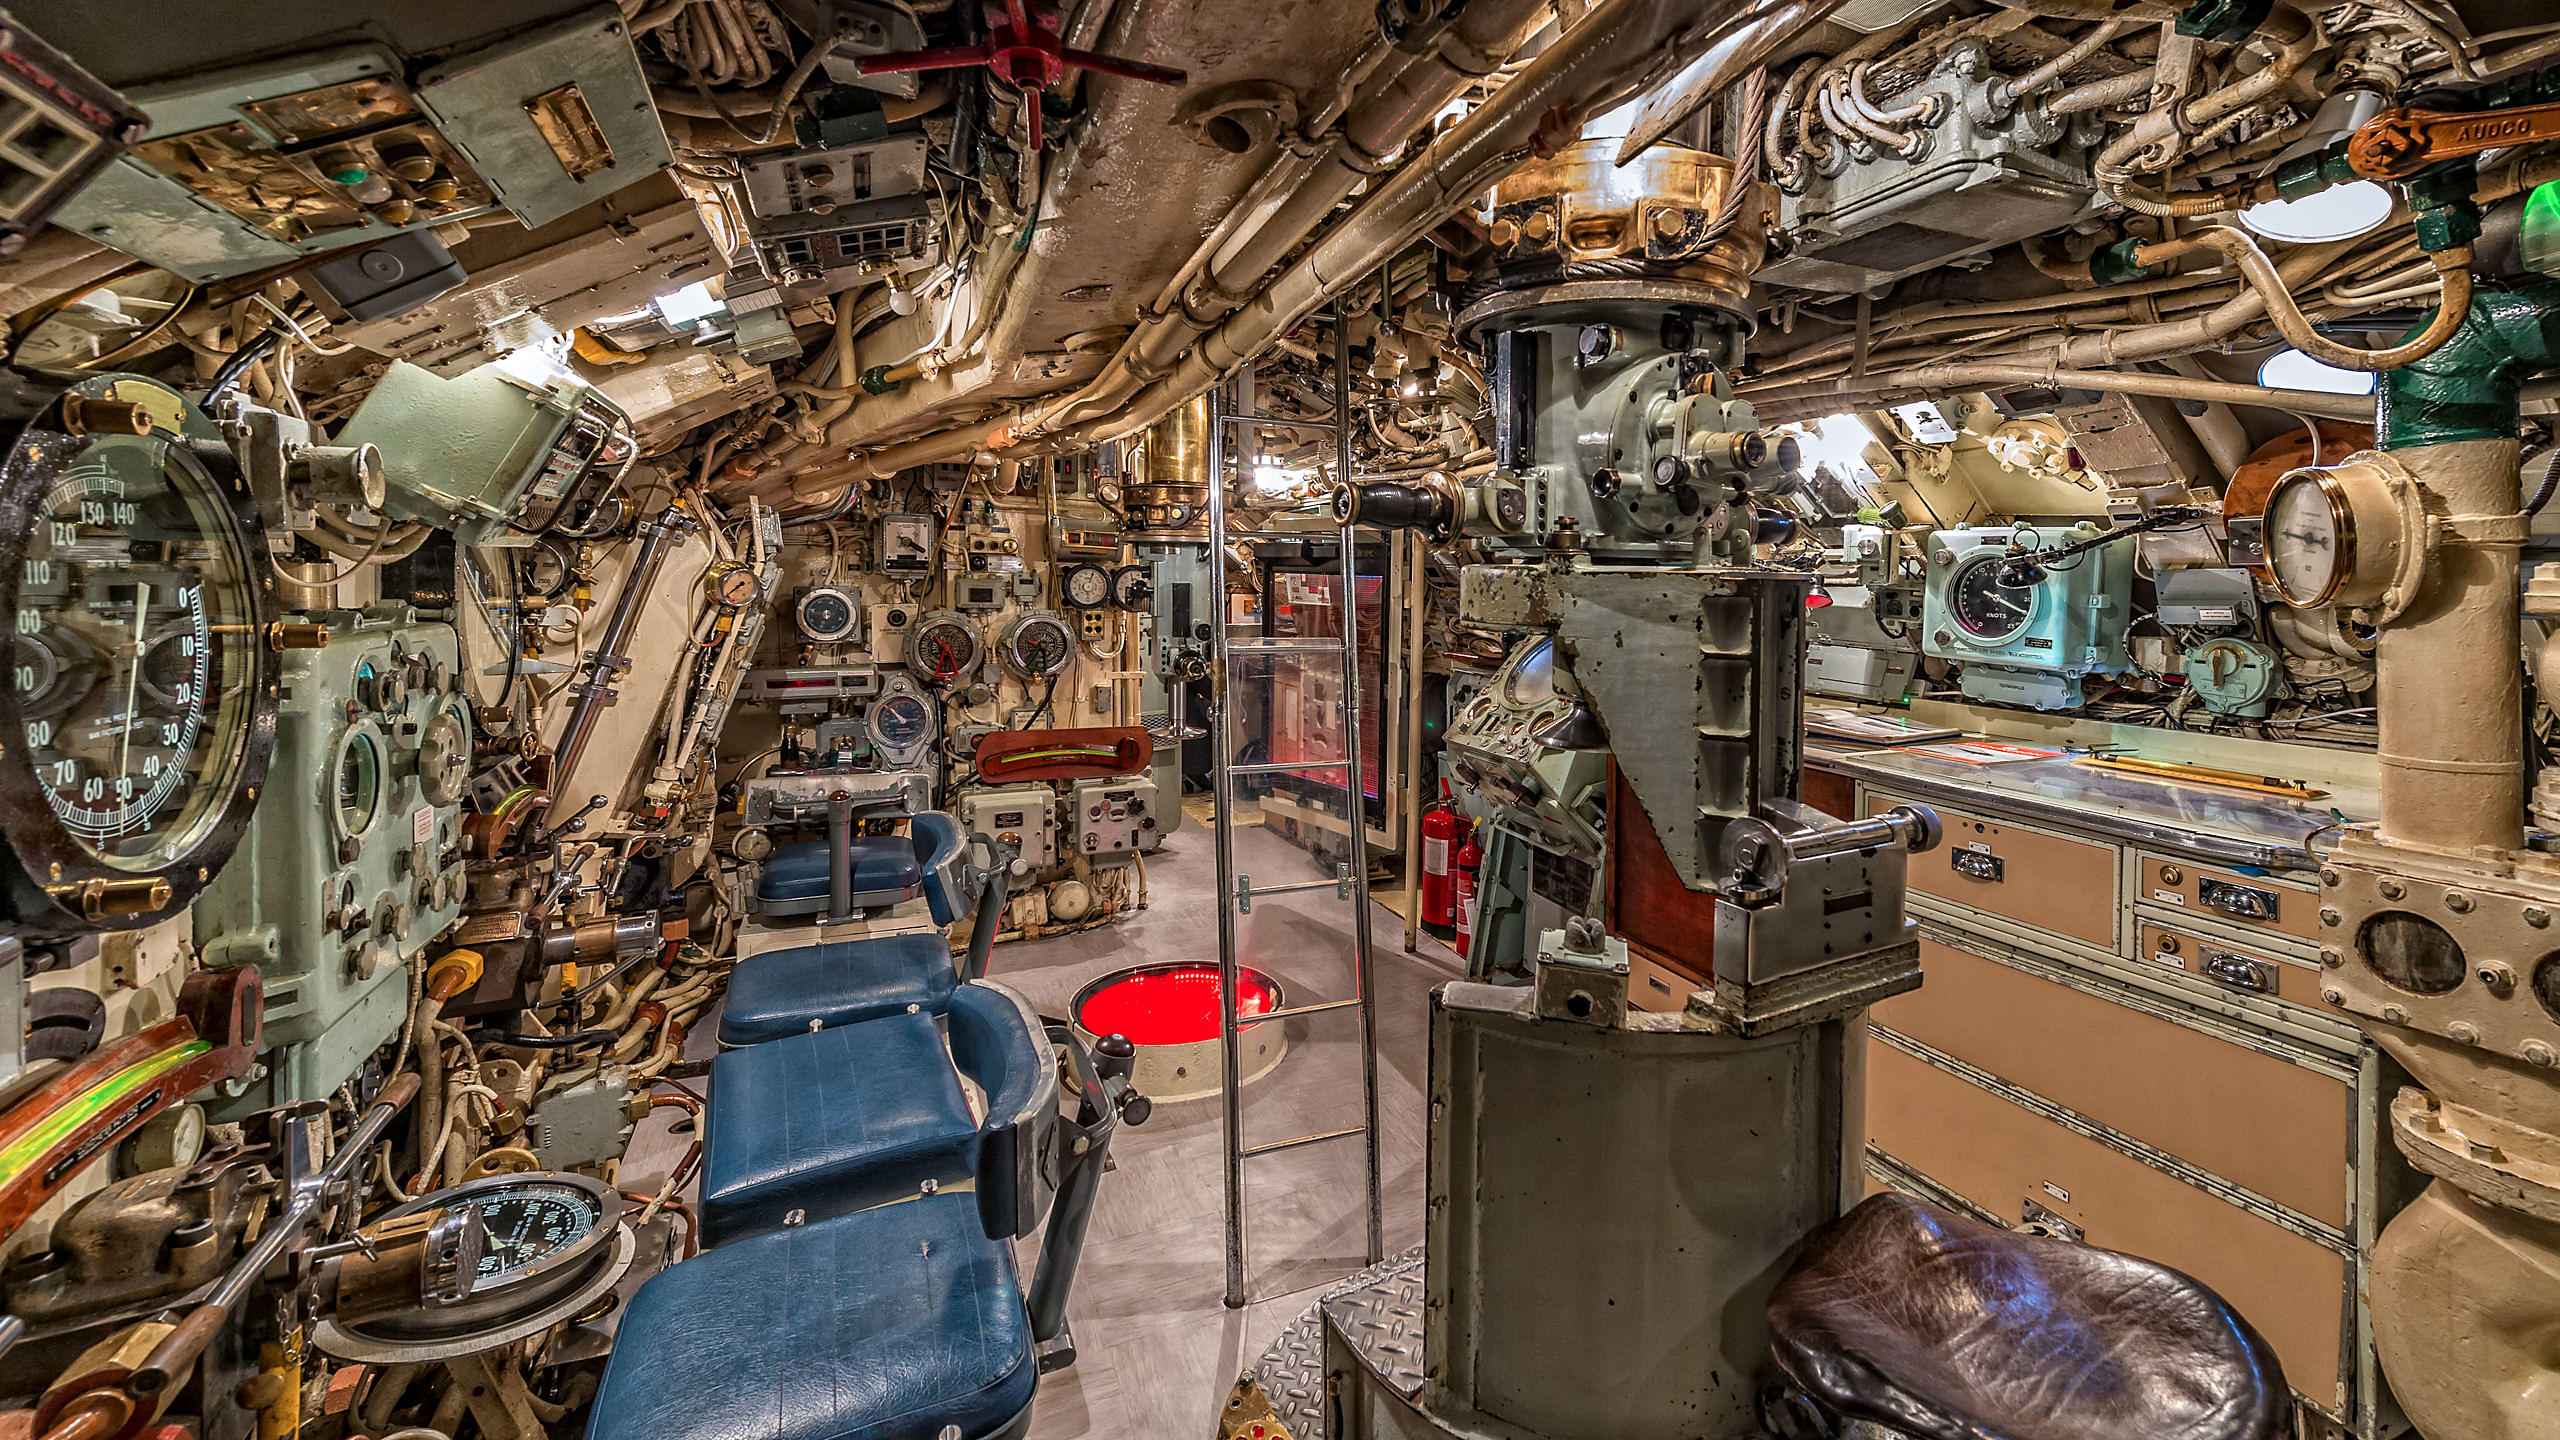 HMS Alliance Submarine Interior